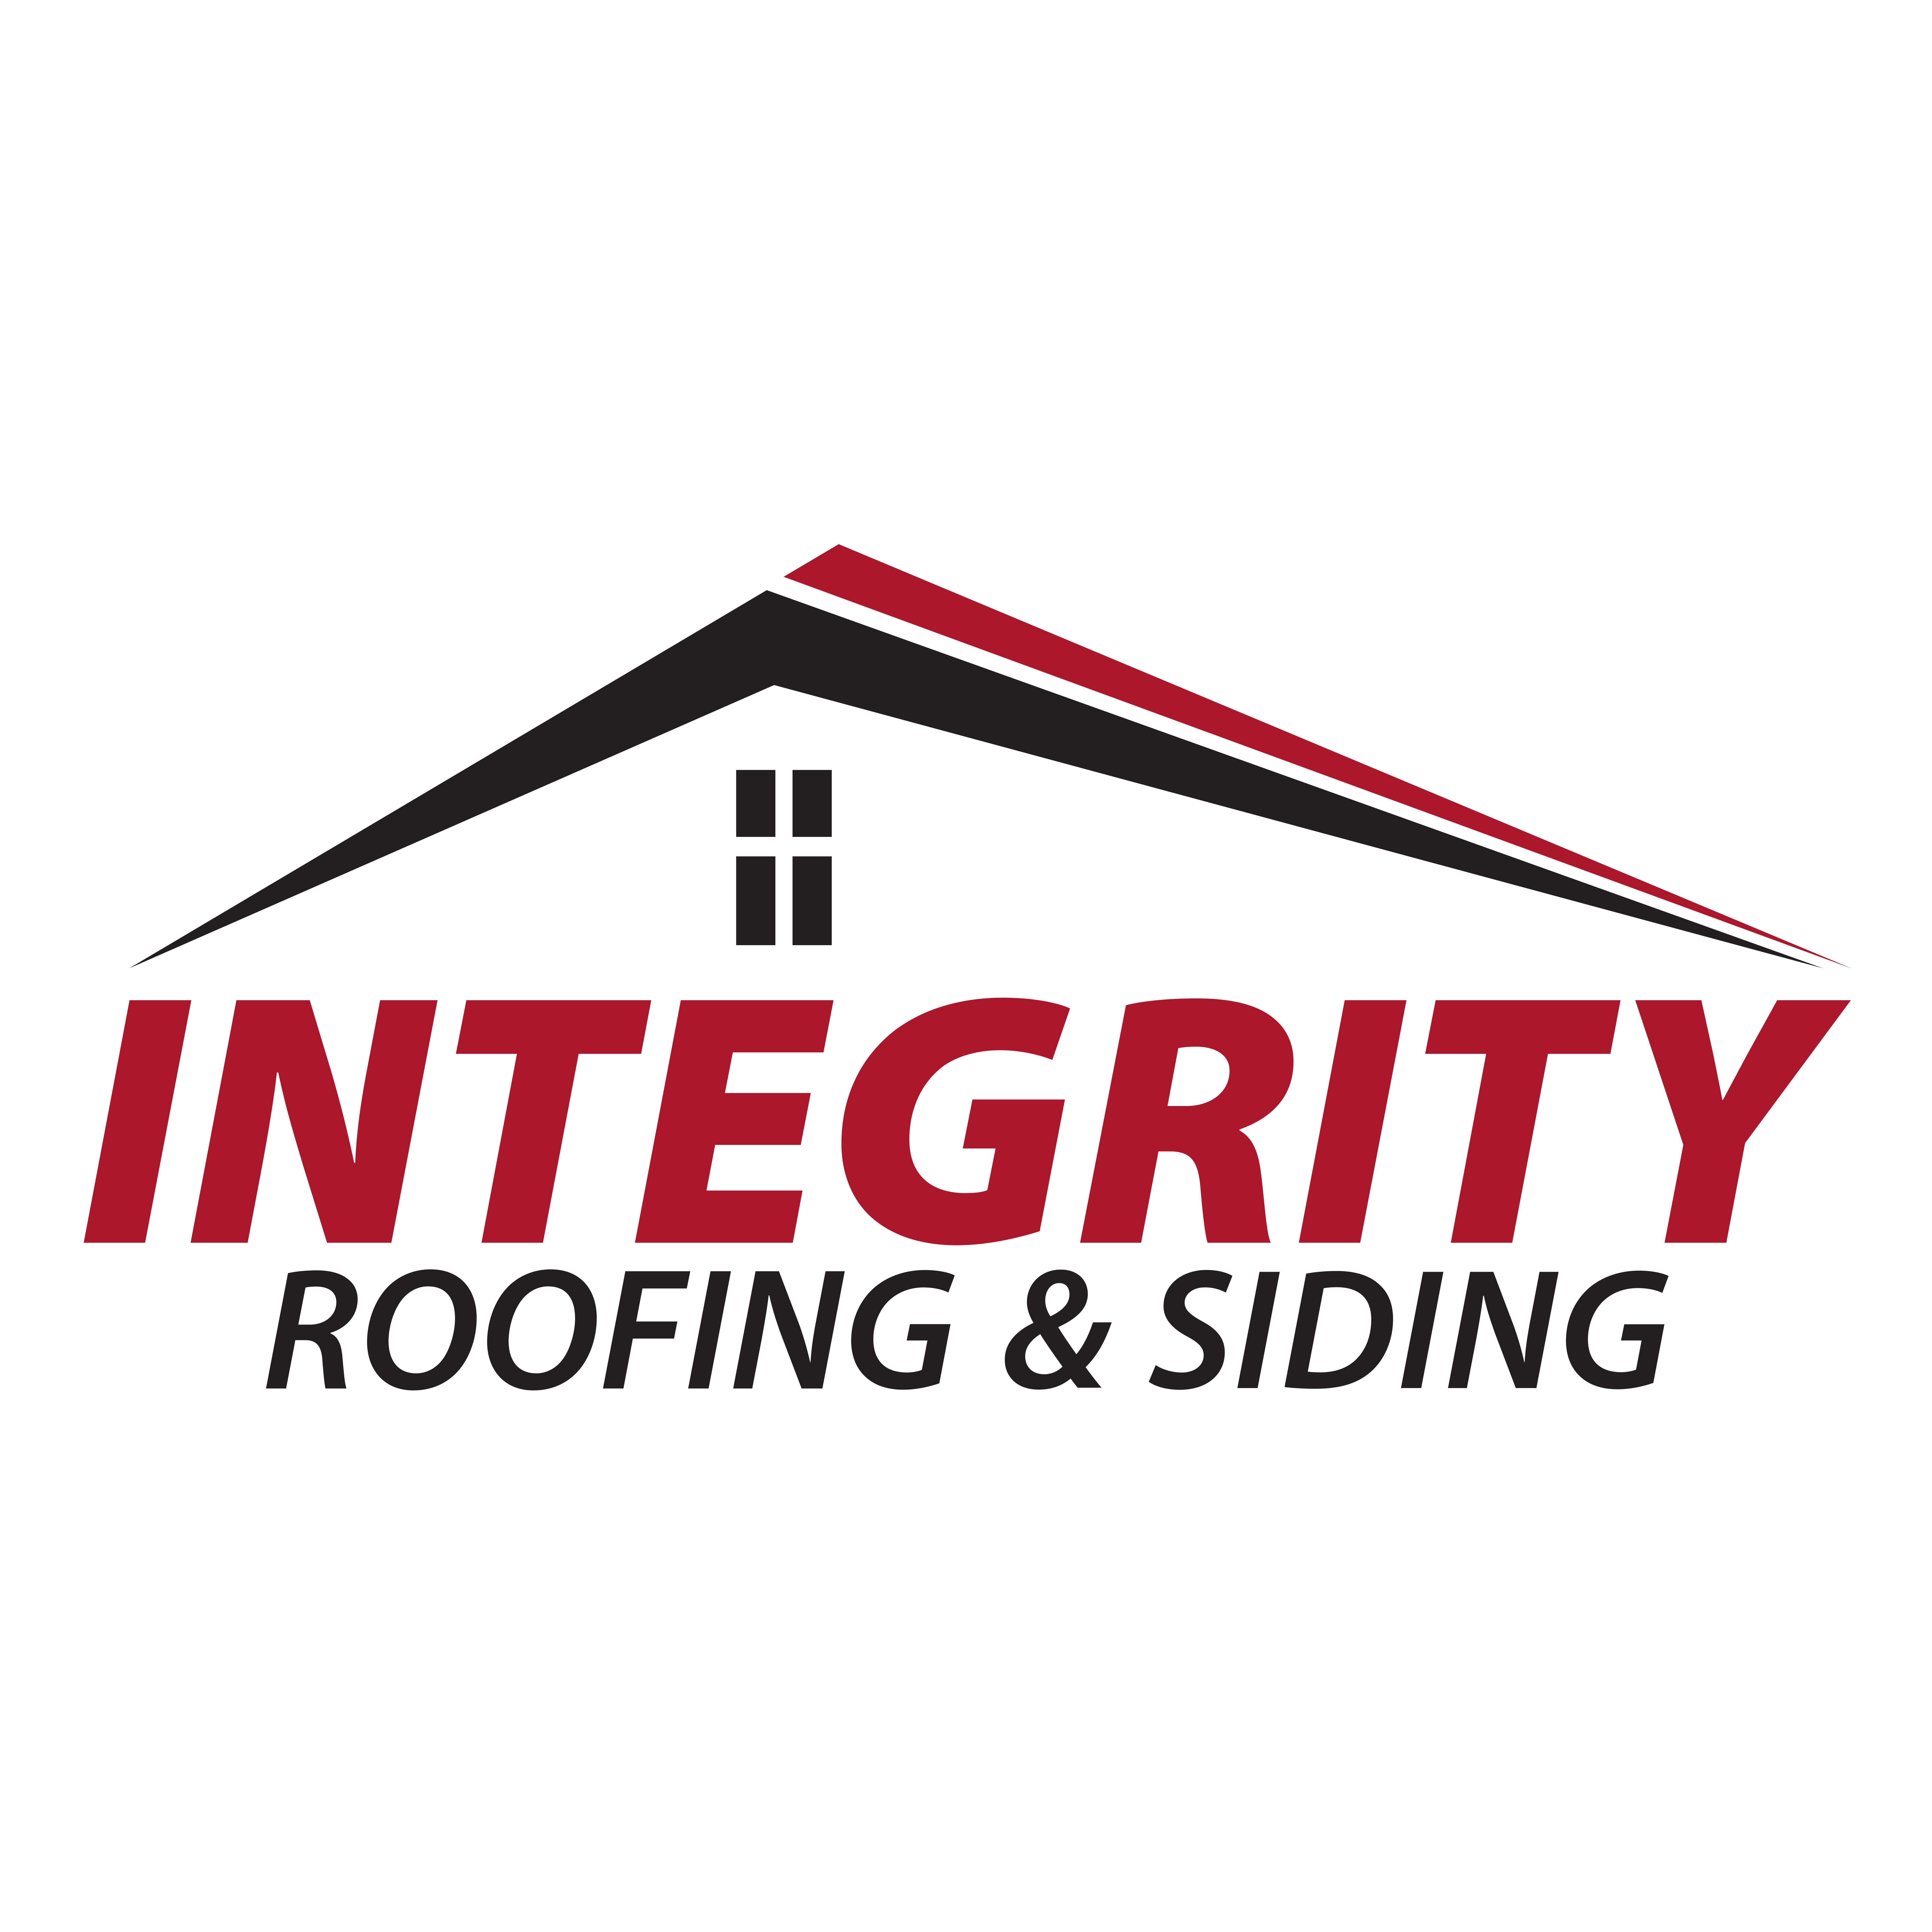 Integrity roofing siding san antonio tx company page for Integrity roofing and exteriors